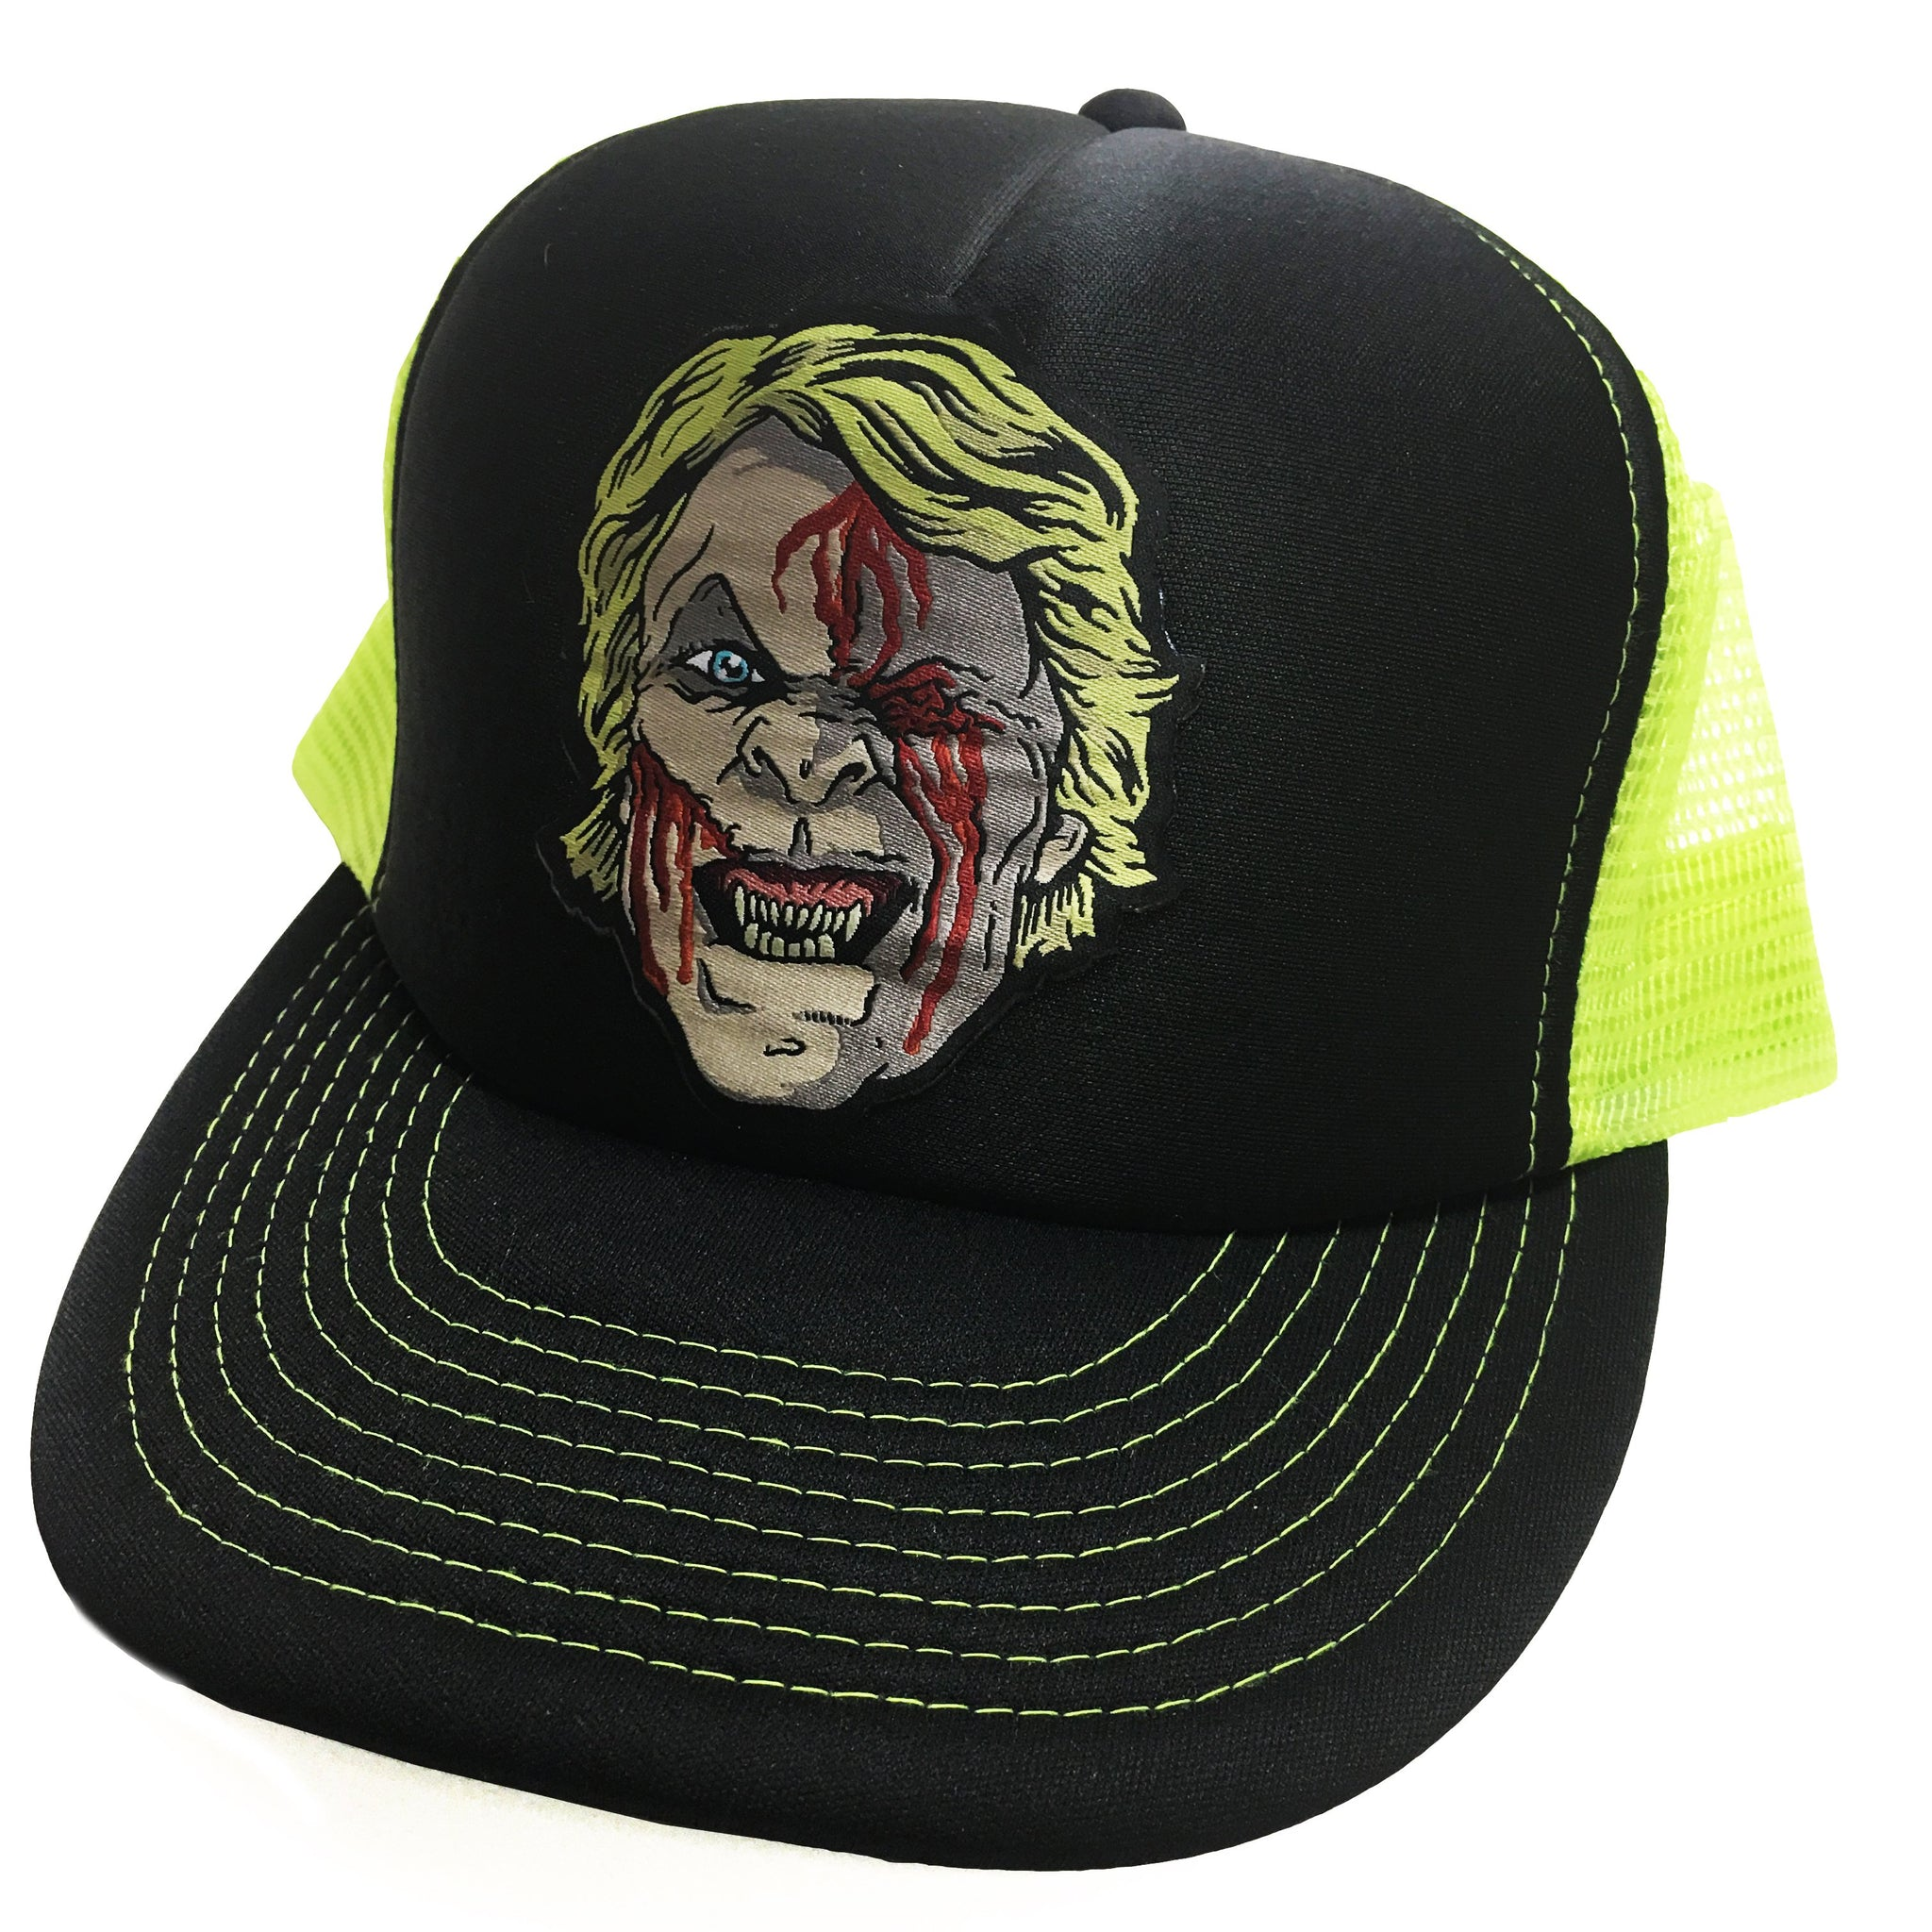 Sleepwalkers Cap